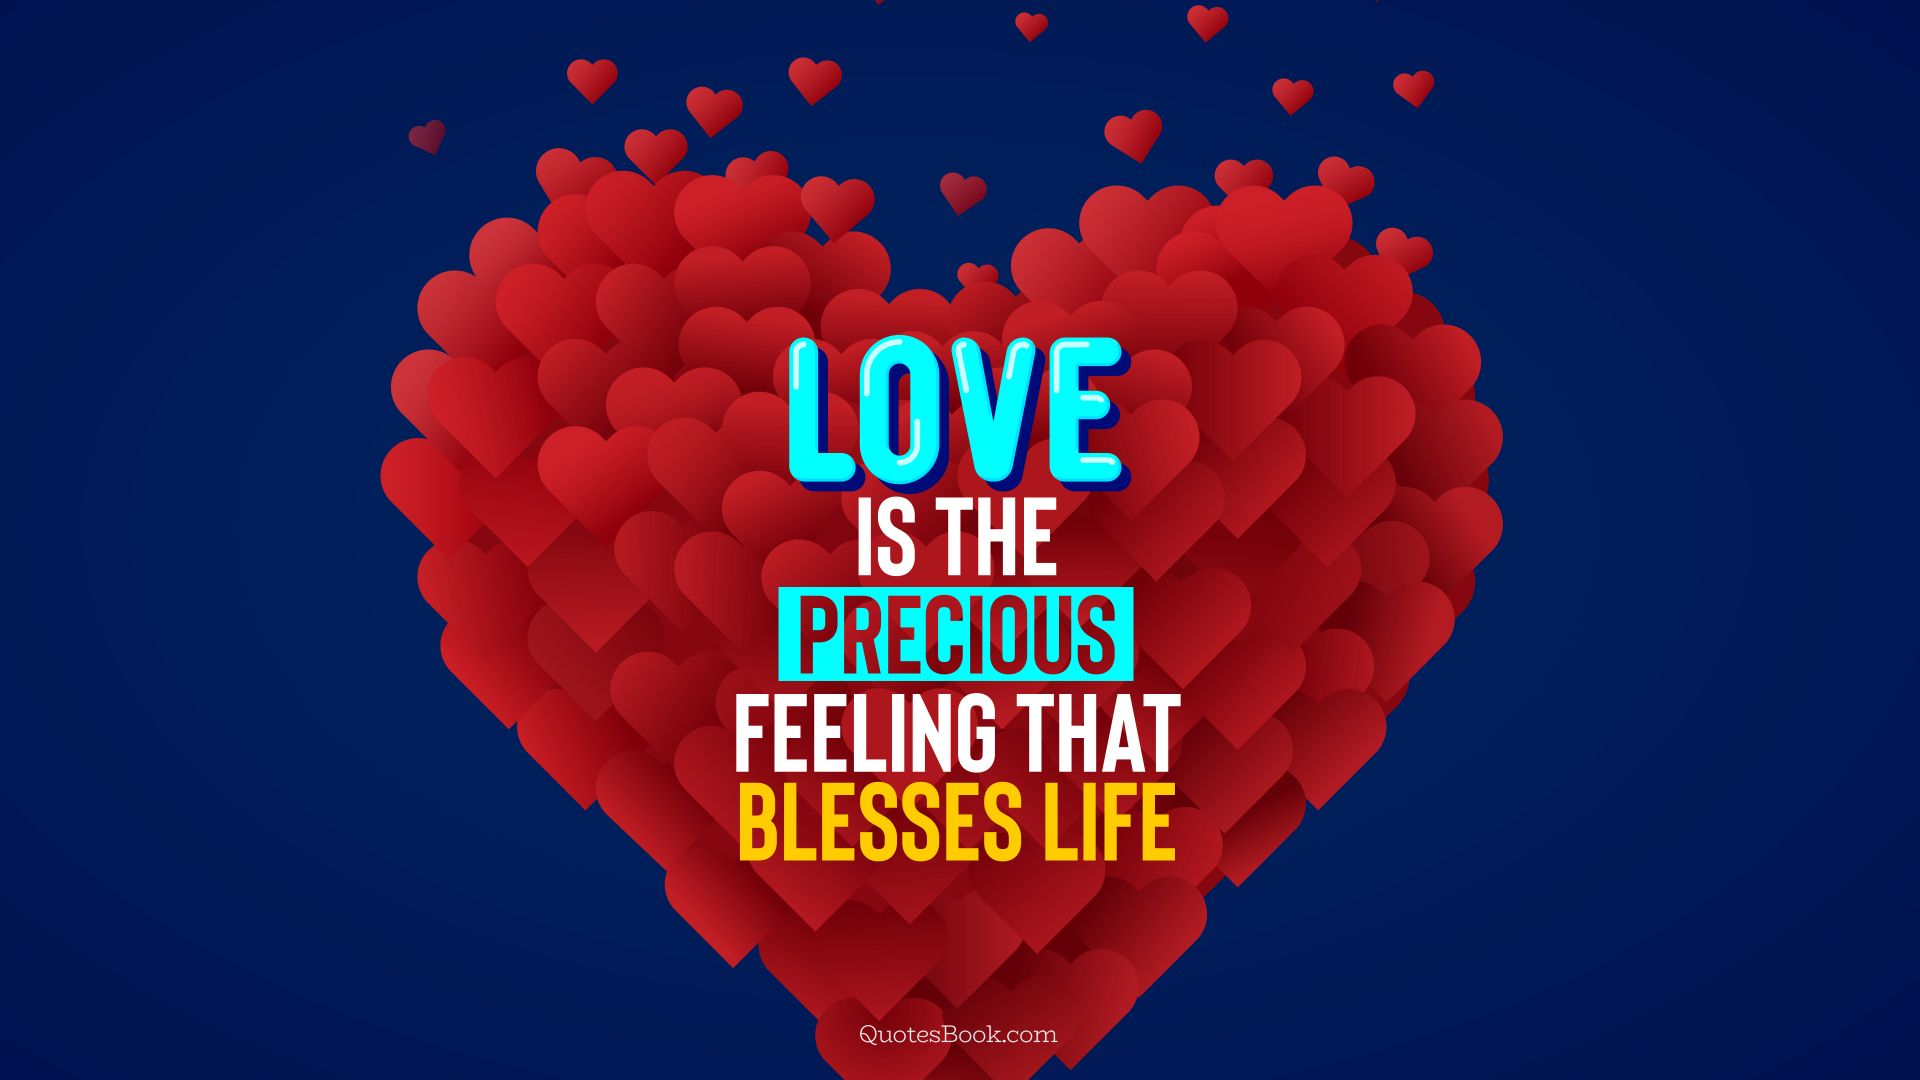 Love is the precious feeling that blesses life